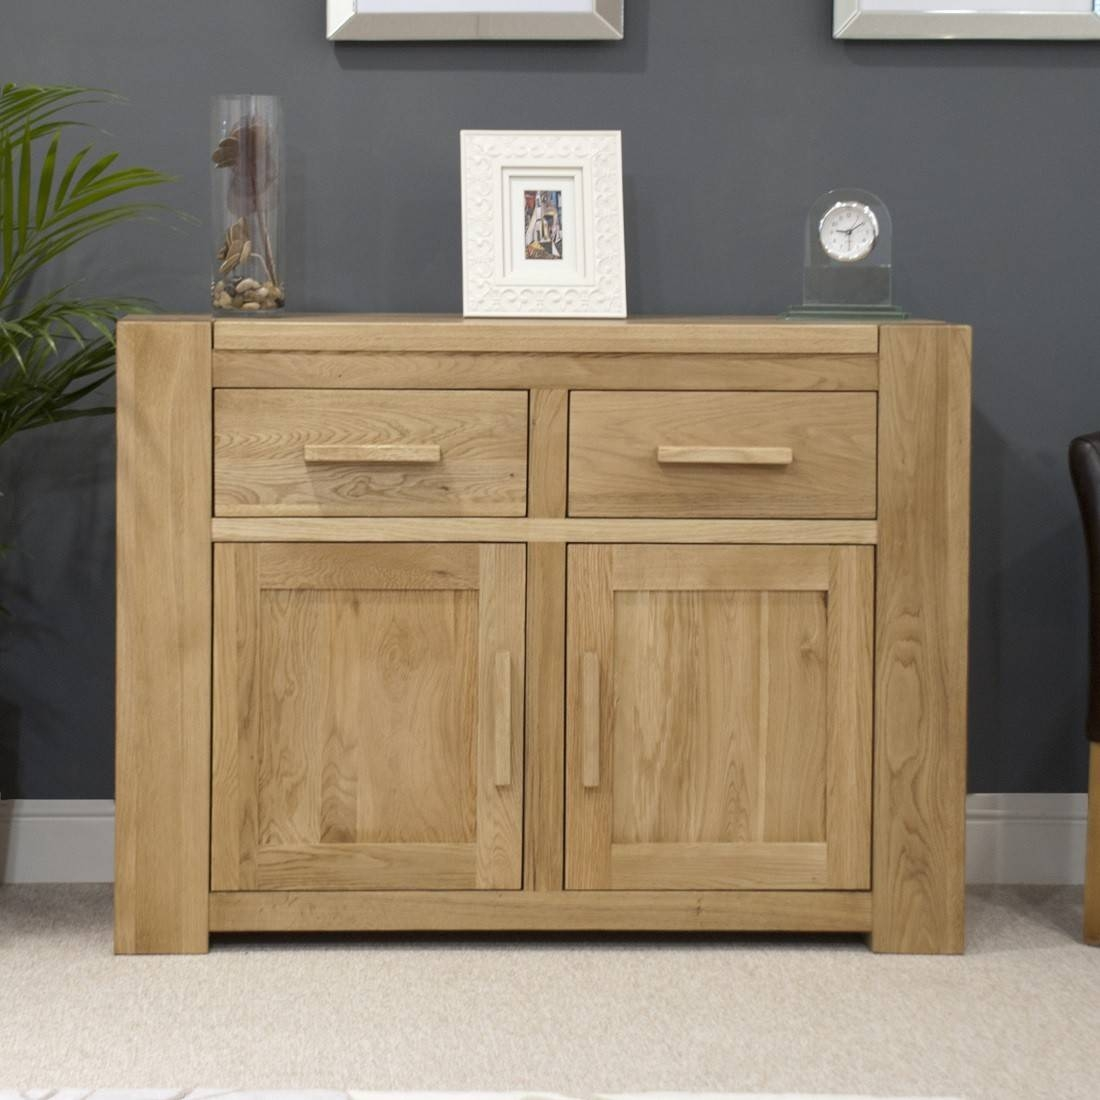 Oak Sideboards | Oak Furniture Uk pertaining to Small Sideboards With Drawers (Image 13 of 30)